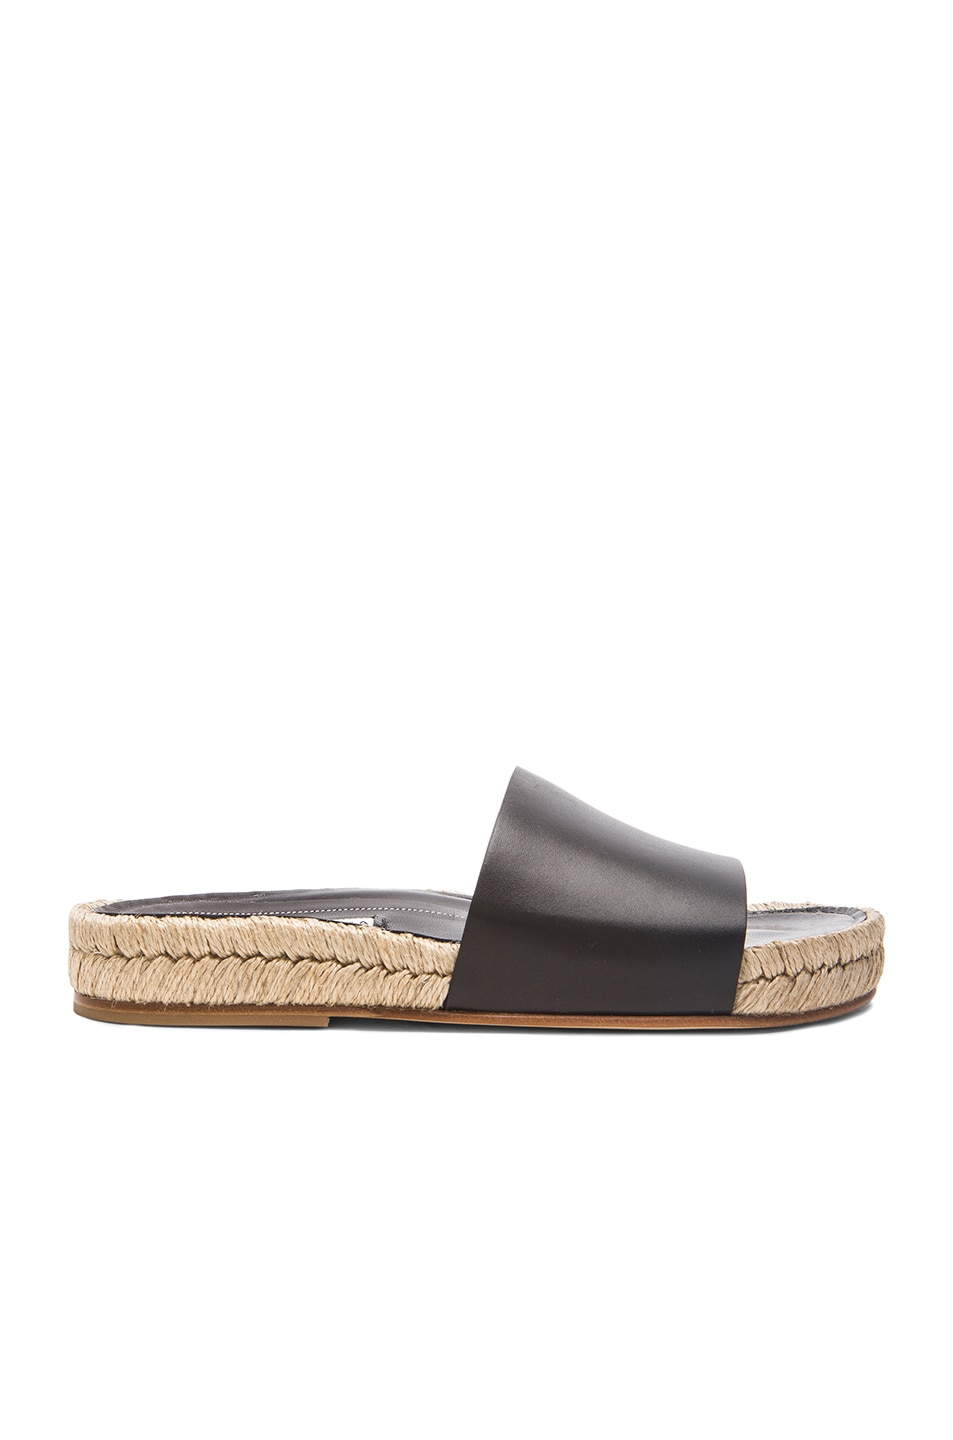 Image 1 of Balenciaga Box Leather Slide Sandals in Black